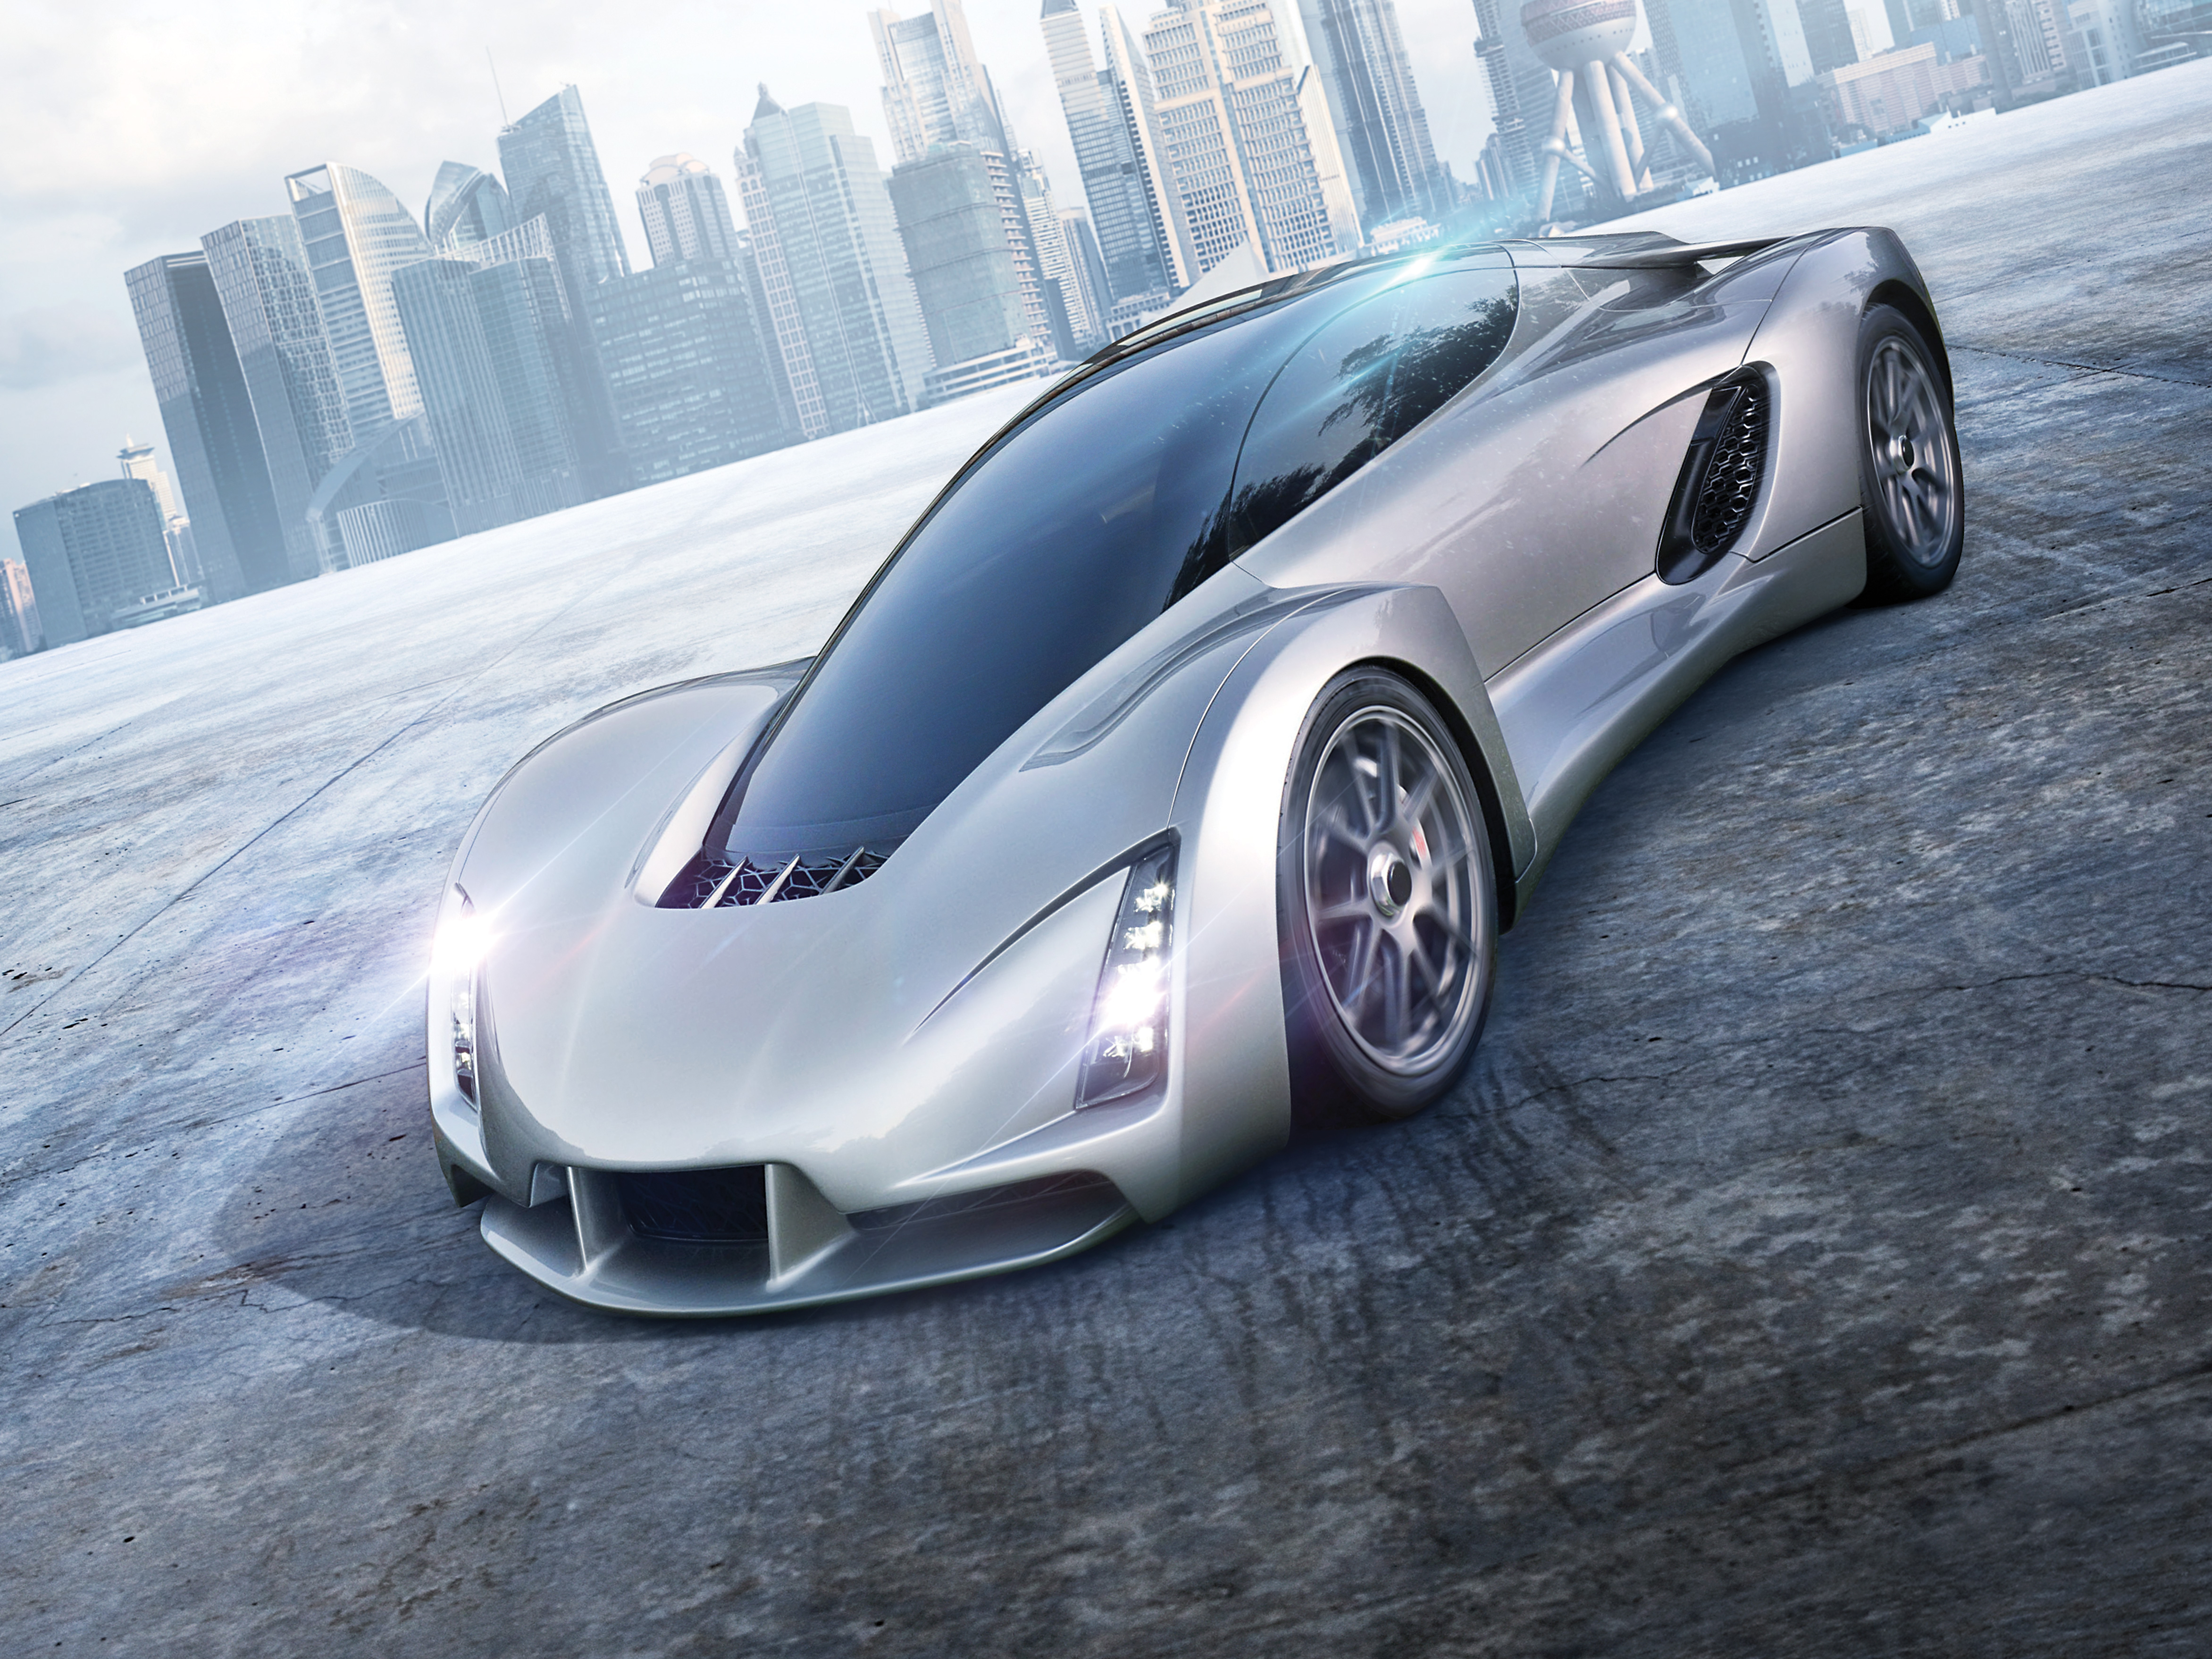 3D-Printed Supercars Will Cut Costs And Emissions